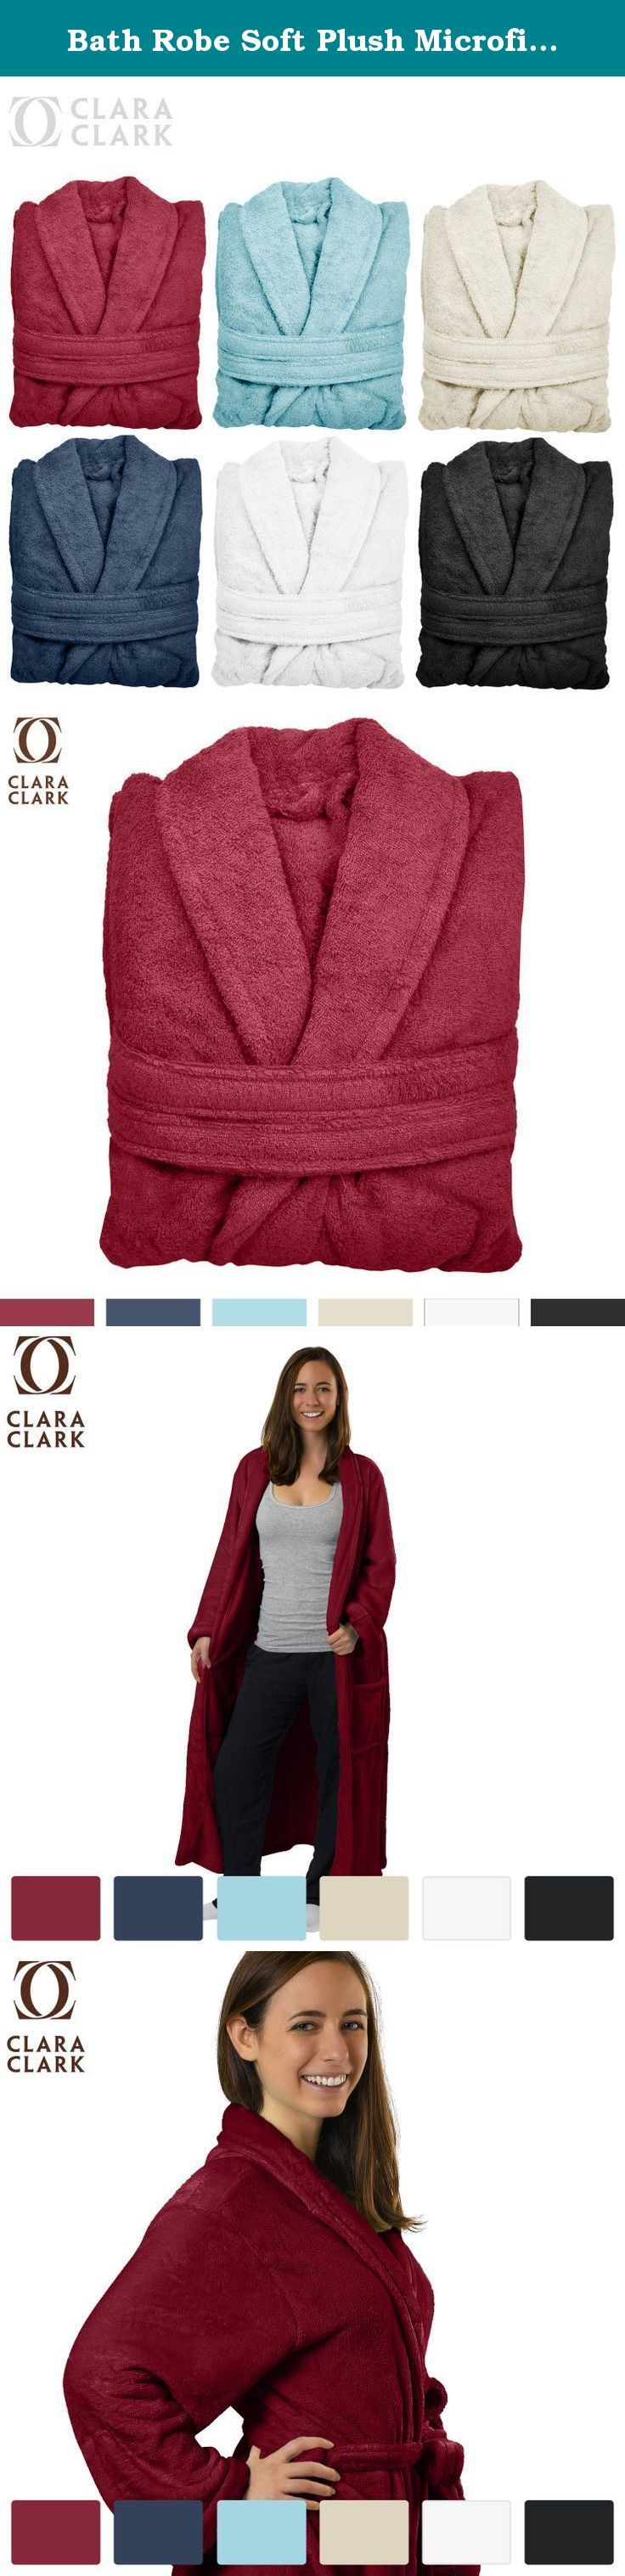 Bath Robe Soft Plush Microfiber, Lightweight Spa Bathrobe, Burgundy. The Best Quality Bath Robe on Amazon. 100% Luxury Soft Microfiber, Hypoallergenic, Cool & Breathable. For Men and Women. Clara Clark - Over 40 Years of Experience in the Bedding Industry. Over 4000+ Happy Customers 5-Star Reviews!!! Clara Clark Clara Clark is highly committed to its customers, we stand behind our product and customers. Our ultimate goal is to satisfy each and every customer, from the moment you purchase…